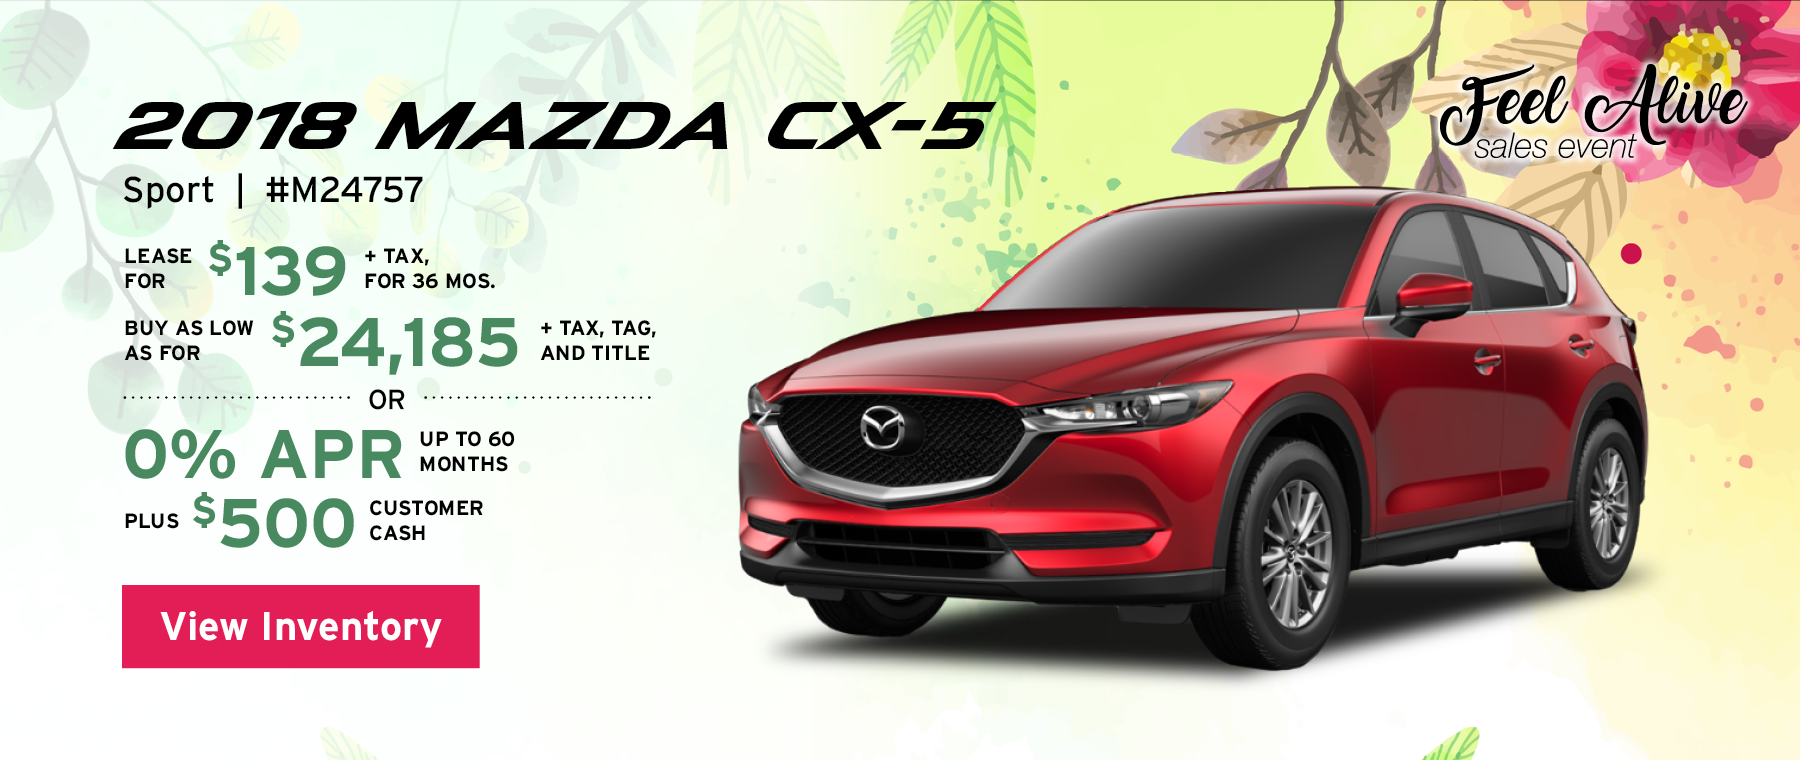 Lease the 2018 Mazda CX-5 Sport stock#M24757 for $139 for 36 months, plus tax. Buy as low for $24,185, plus tax, tag, and title, or 0% APR up to 60 months, plus $250 customer cash. View inventory.